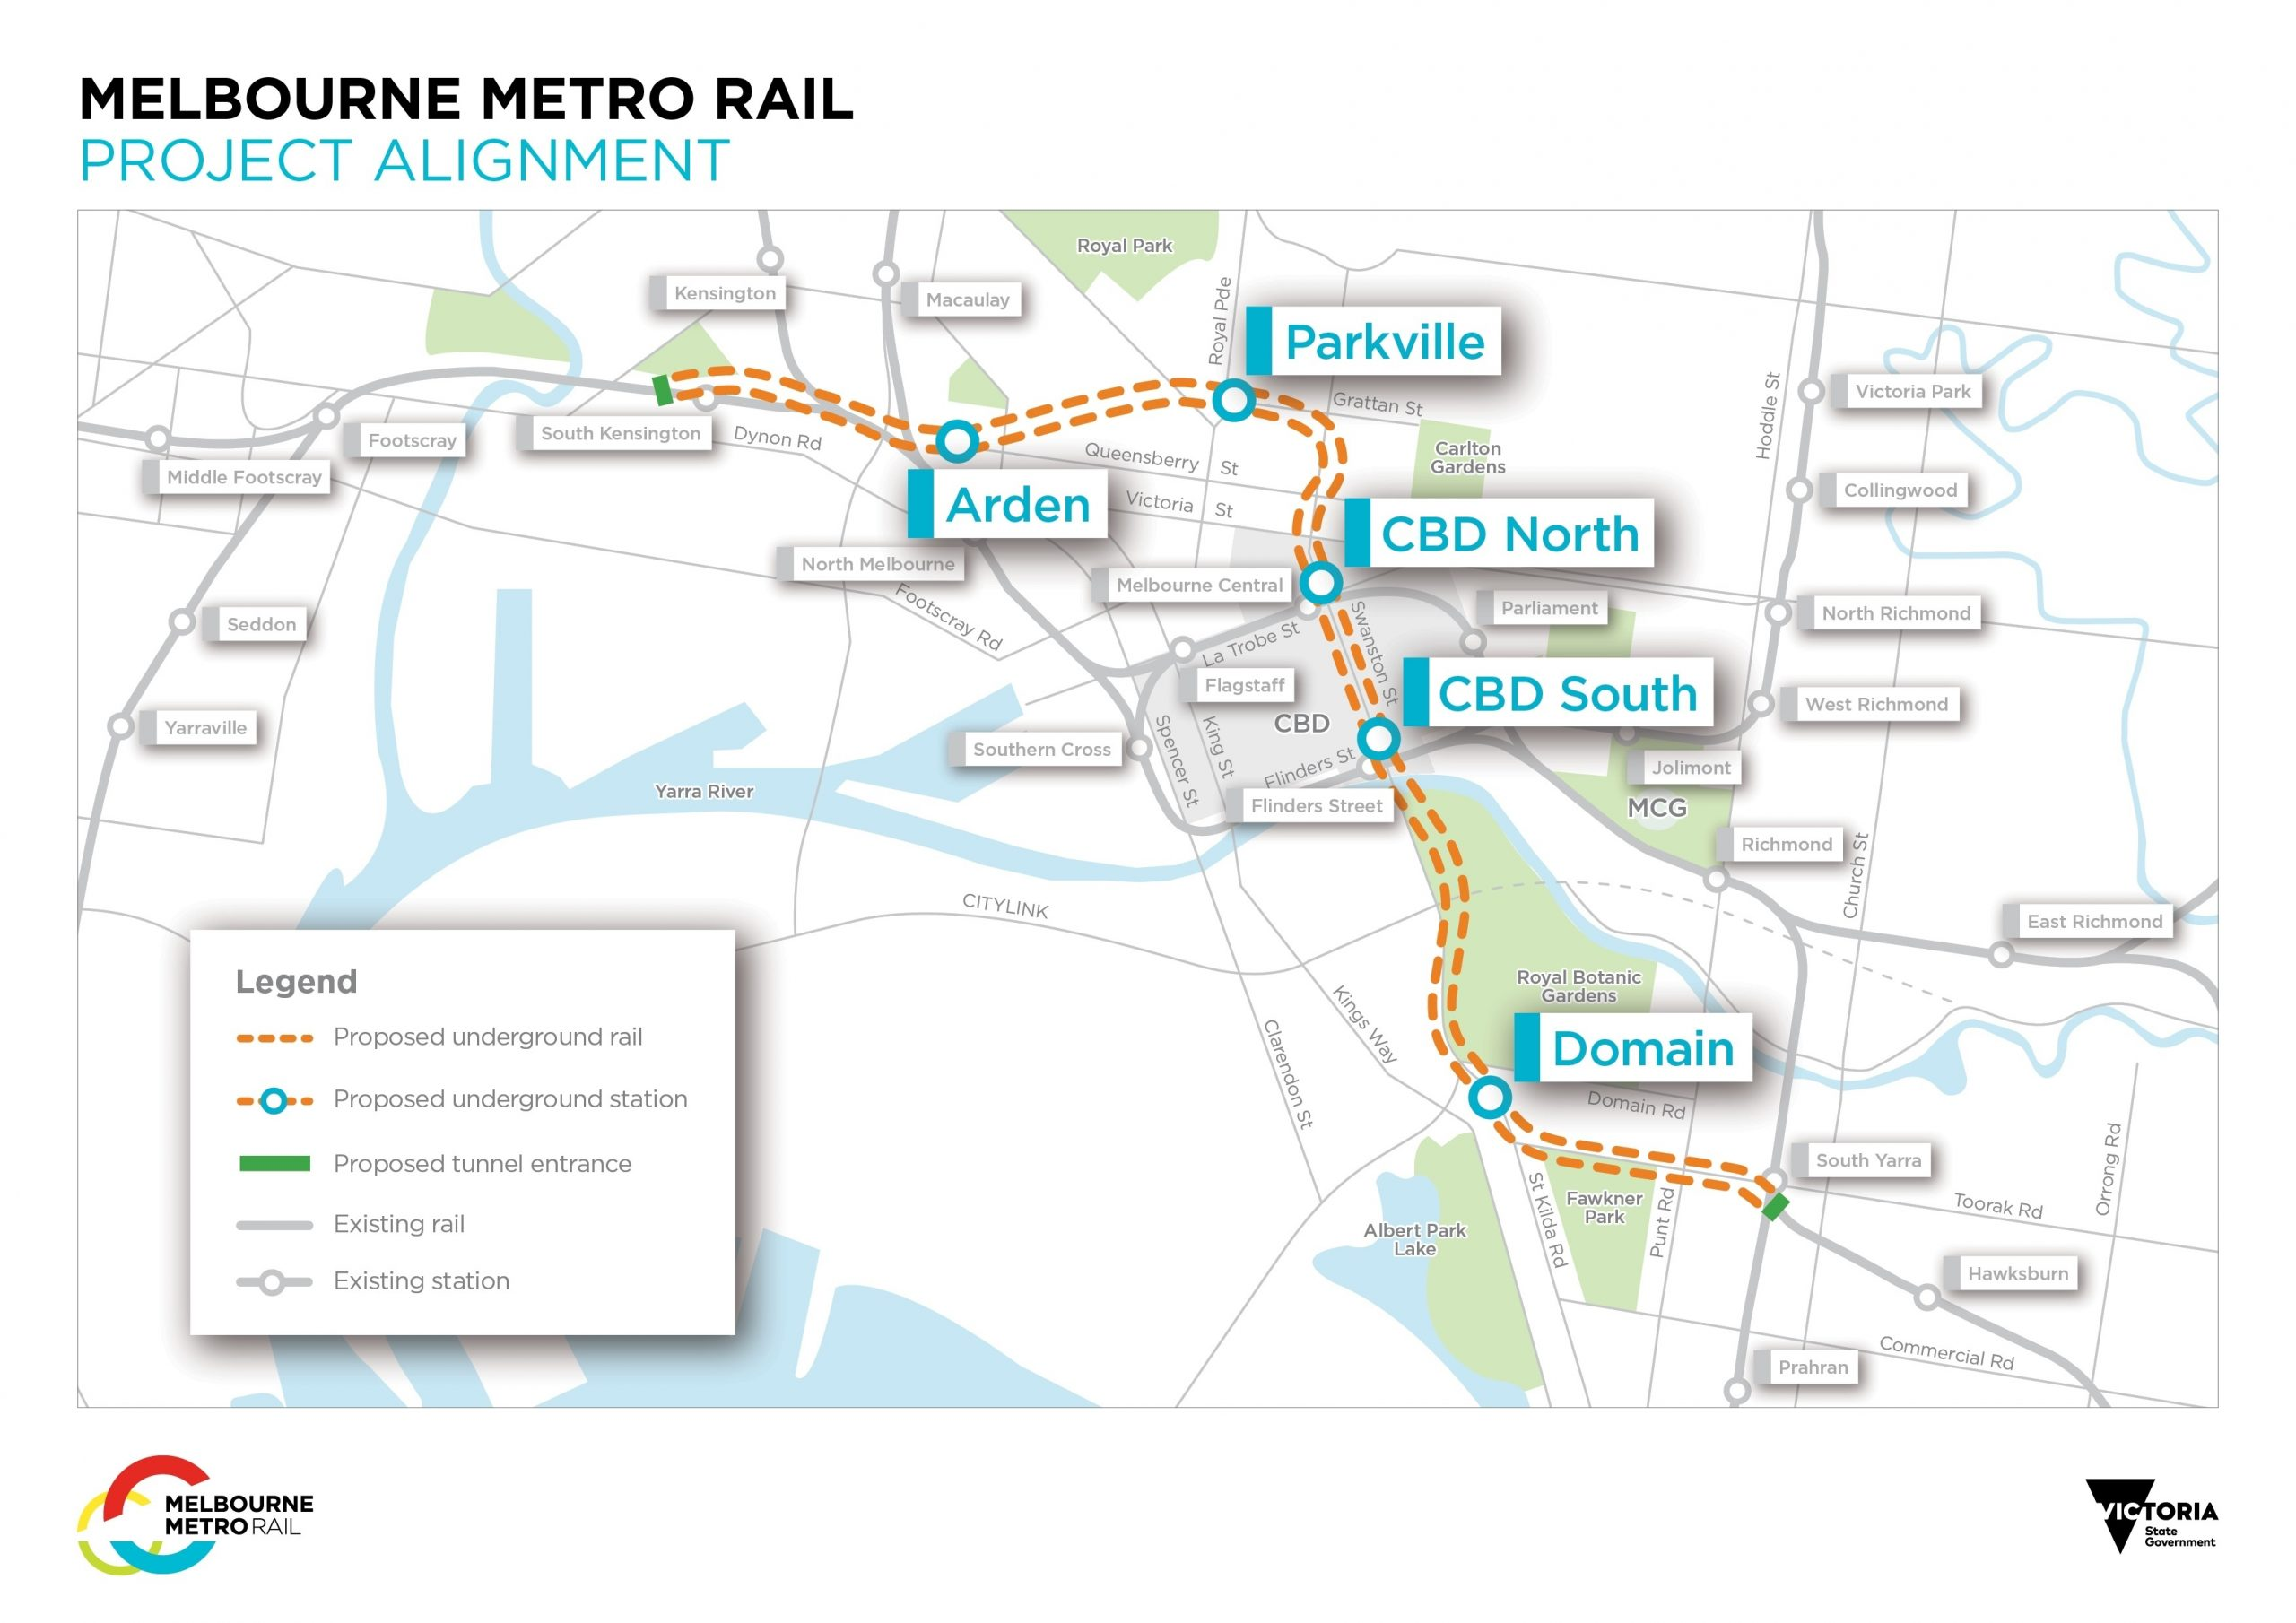 Contract Signed For Hcmt Trains | The Southern Thunderer within Melbourne Metropolitan Area Map 2018